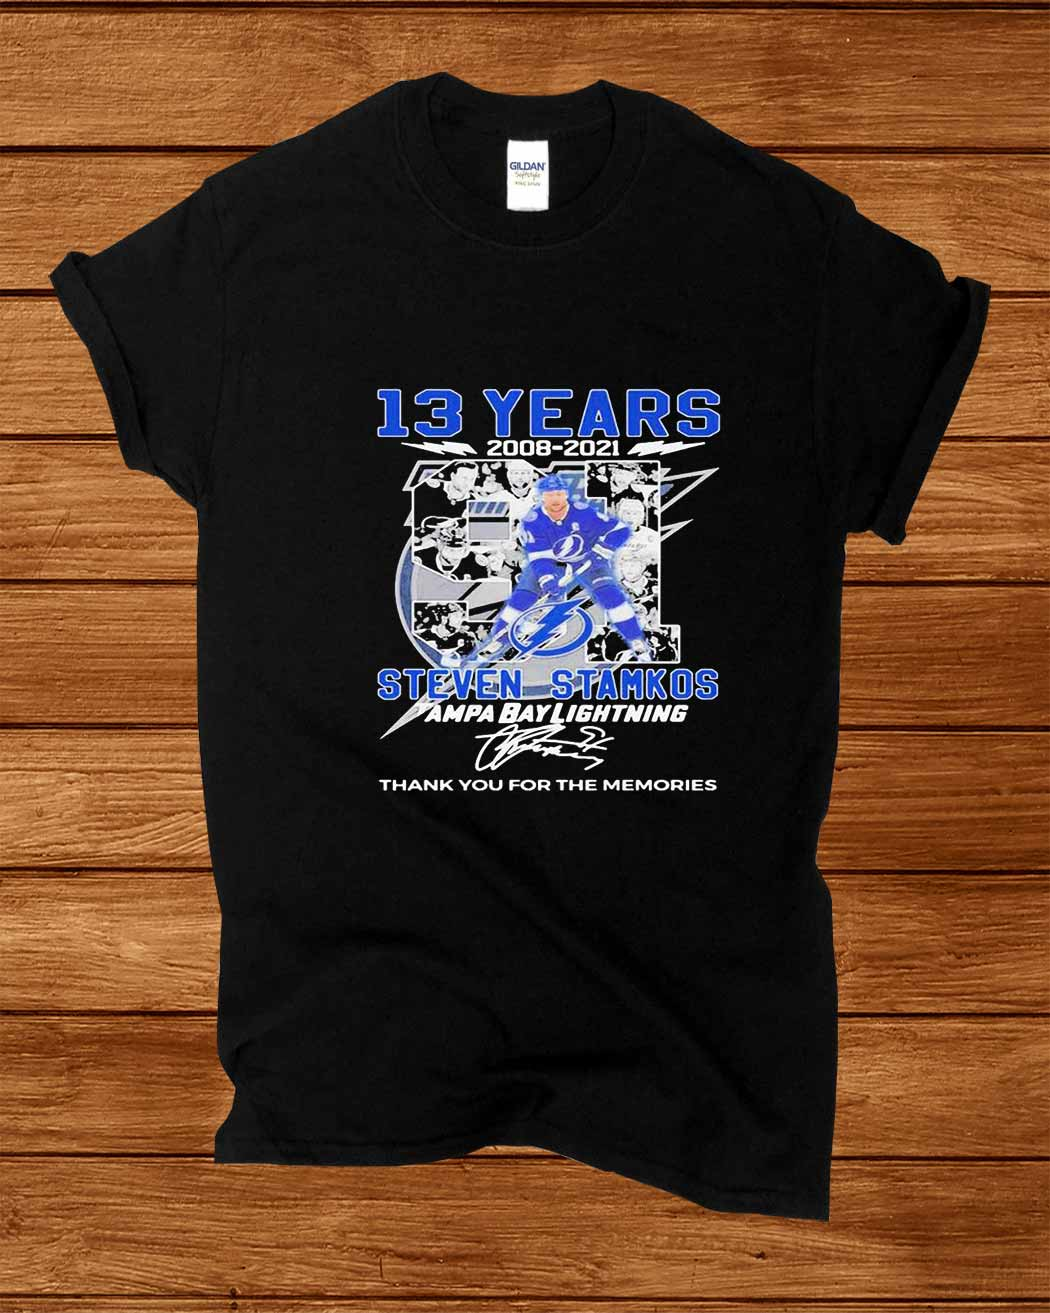 13 Years 2008 2021 Steven Stamkos Tampa Bay Lightning Thank You For The Memories Signature Shirt